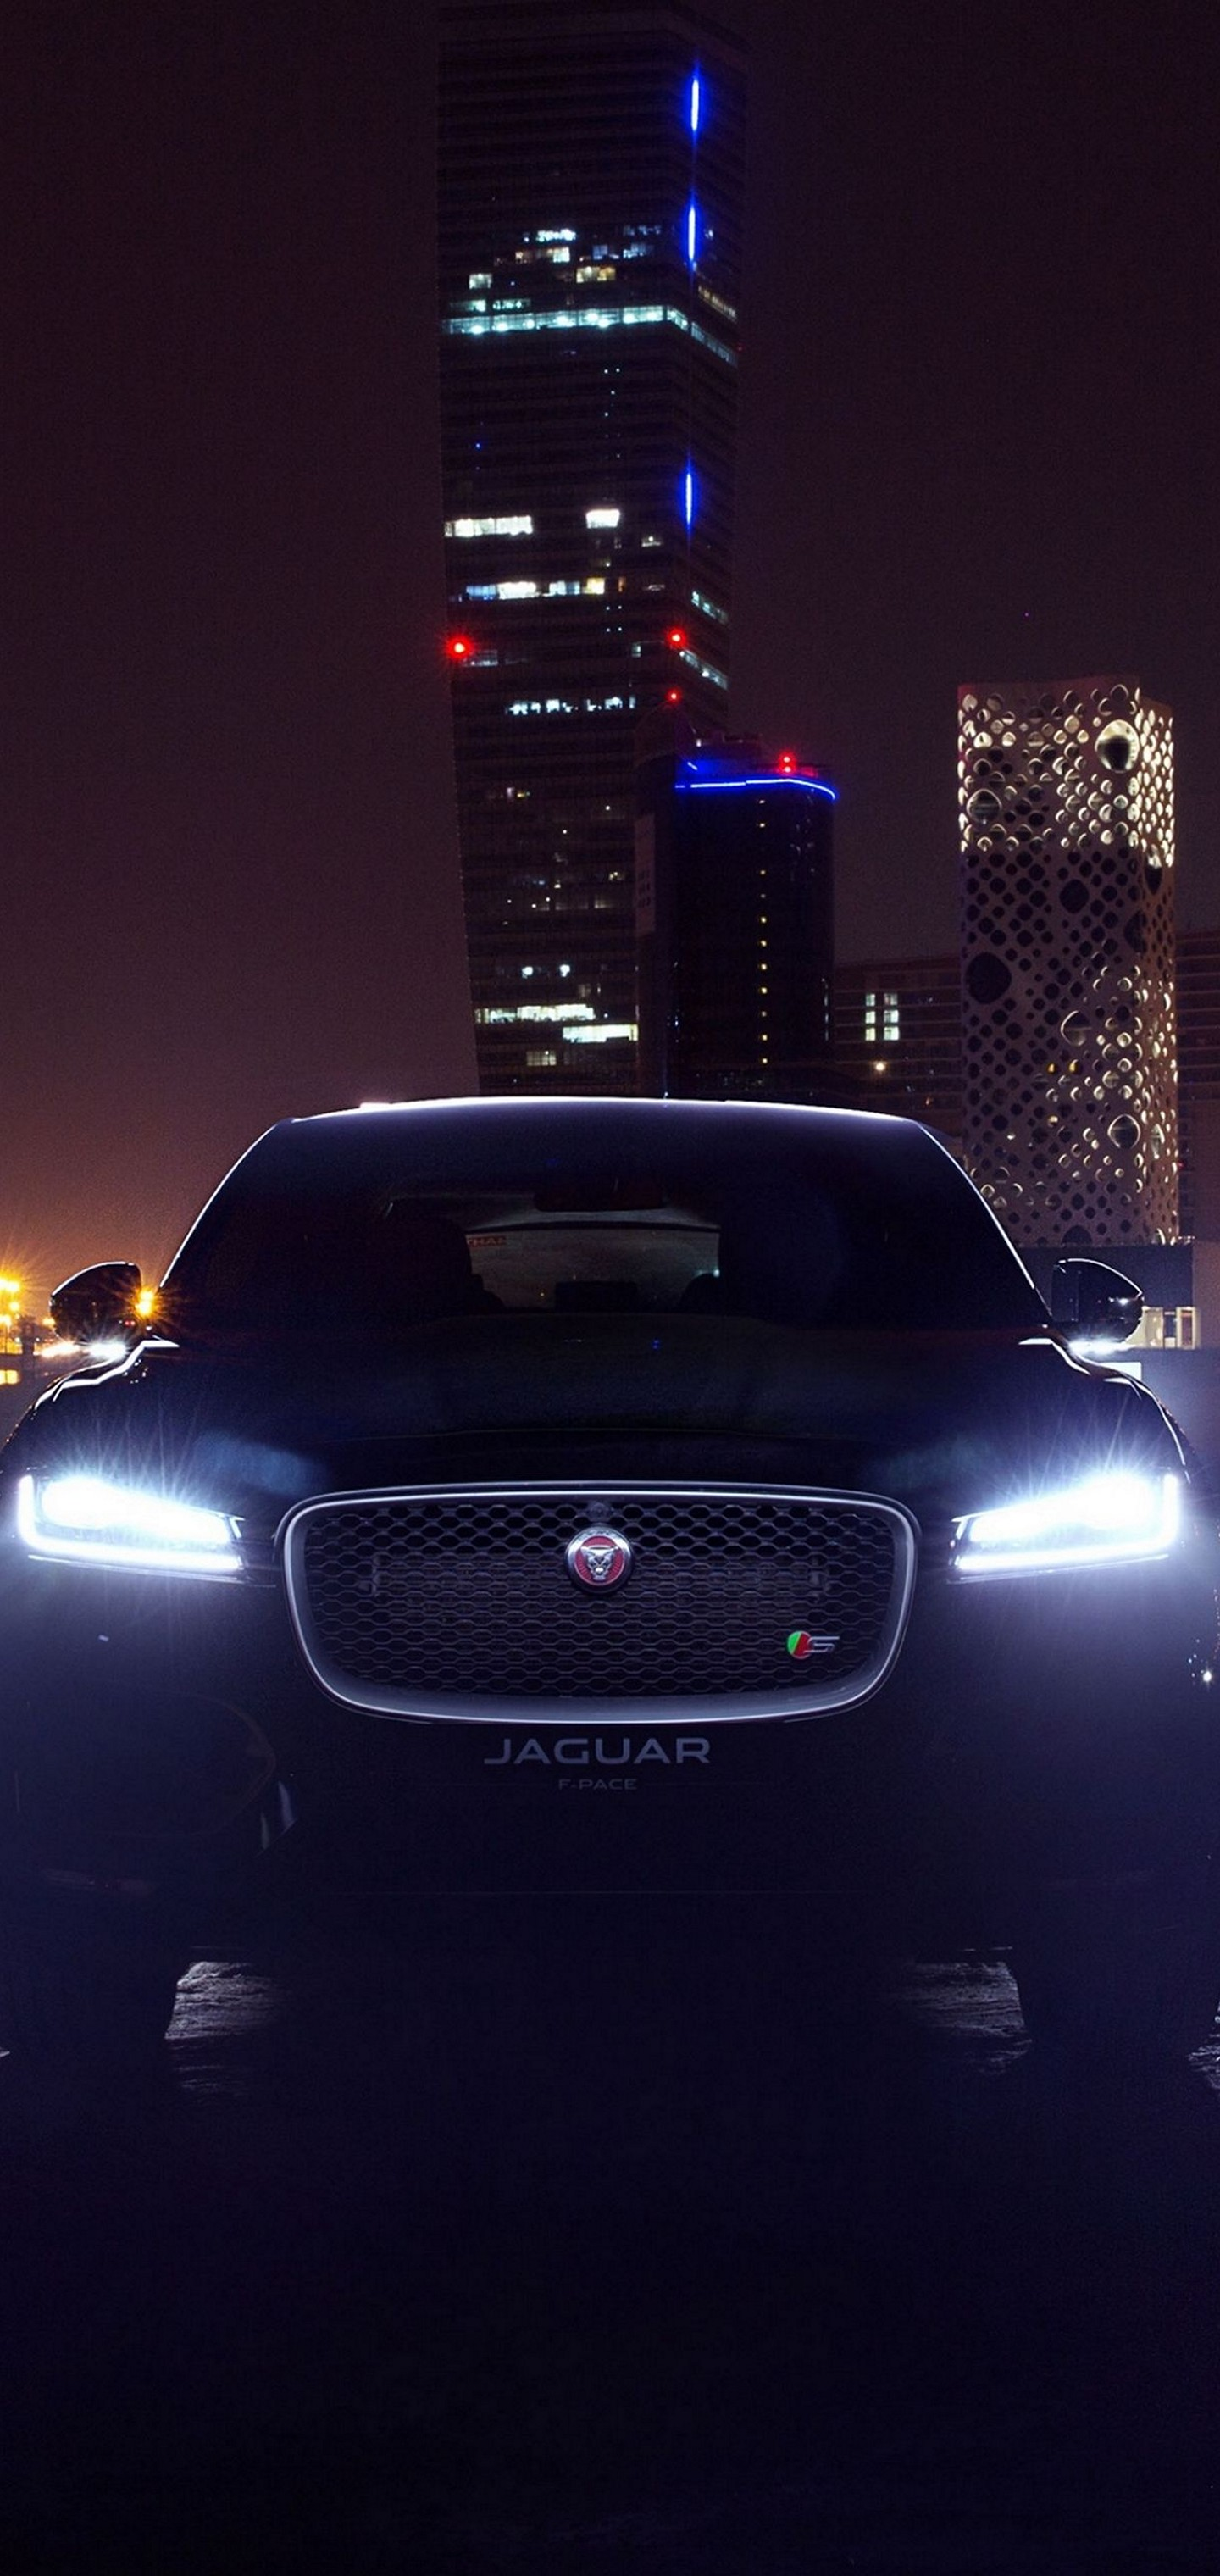 1280x720 interested about vehicles love to have a jaguar black cars wallpapers. Download Iphone Jaguar Wallpaper Car Pictures Picture Idokeren